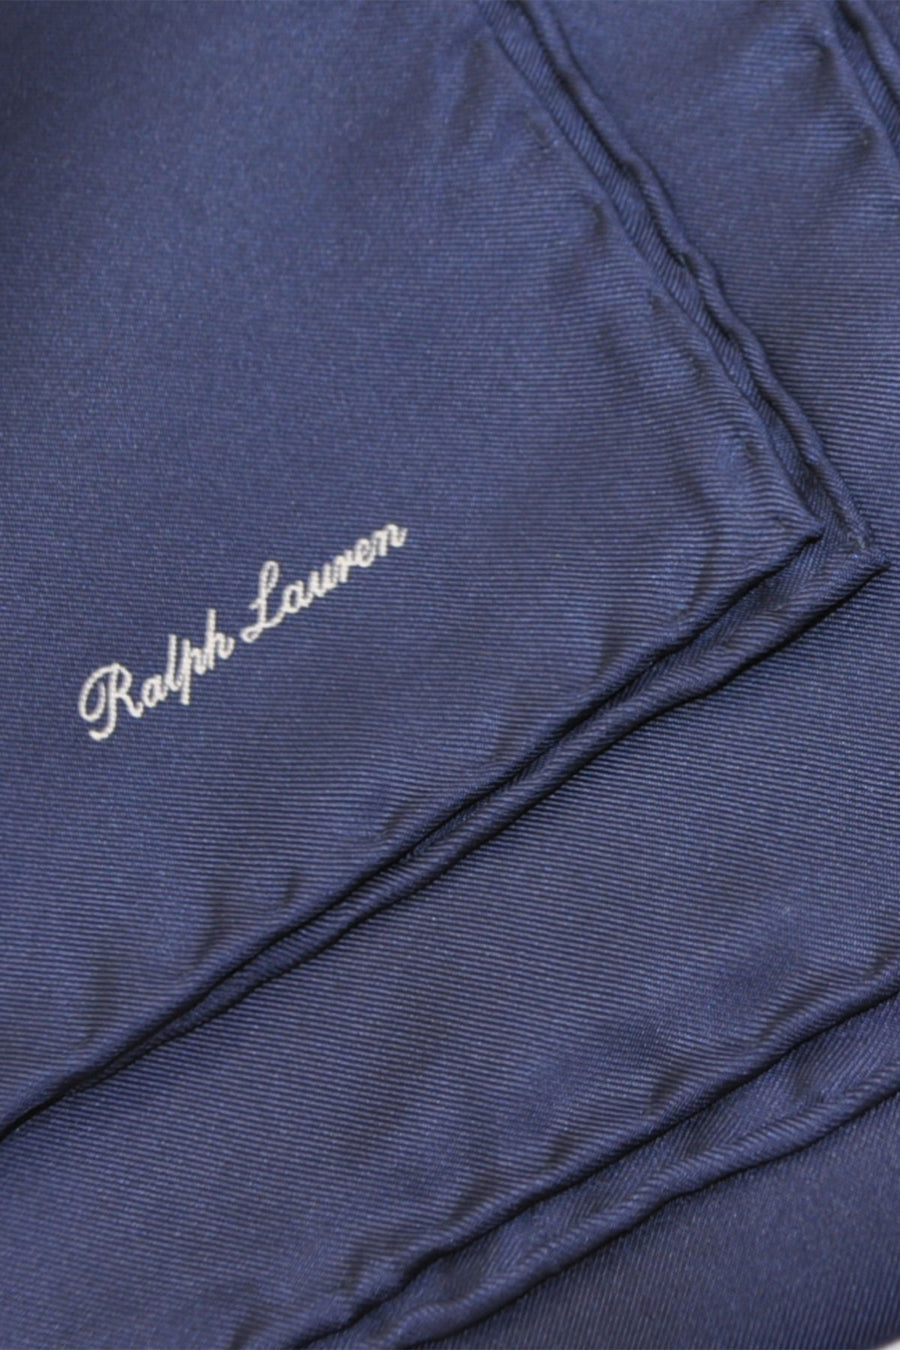 Ralph Lauren Silk Pocket Square Solid Dark Navy - Hand Made In Italy SALE